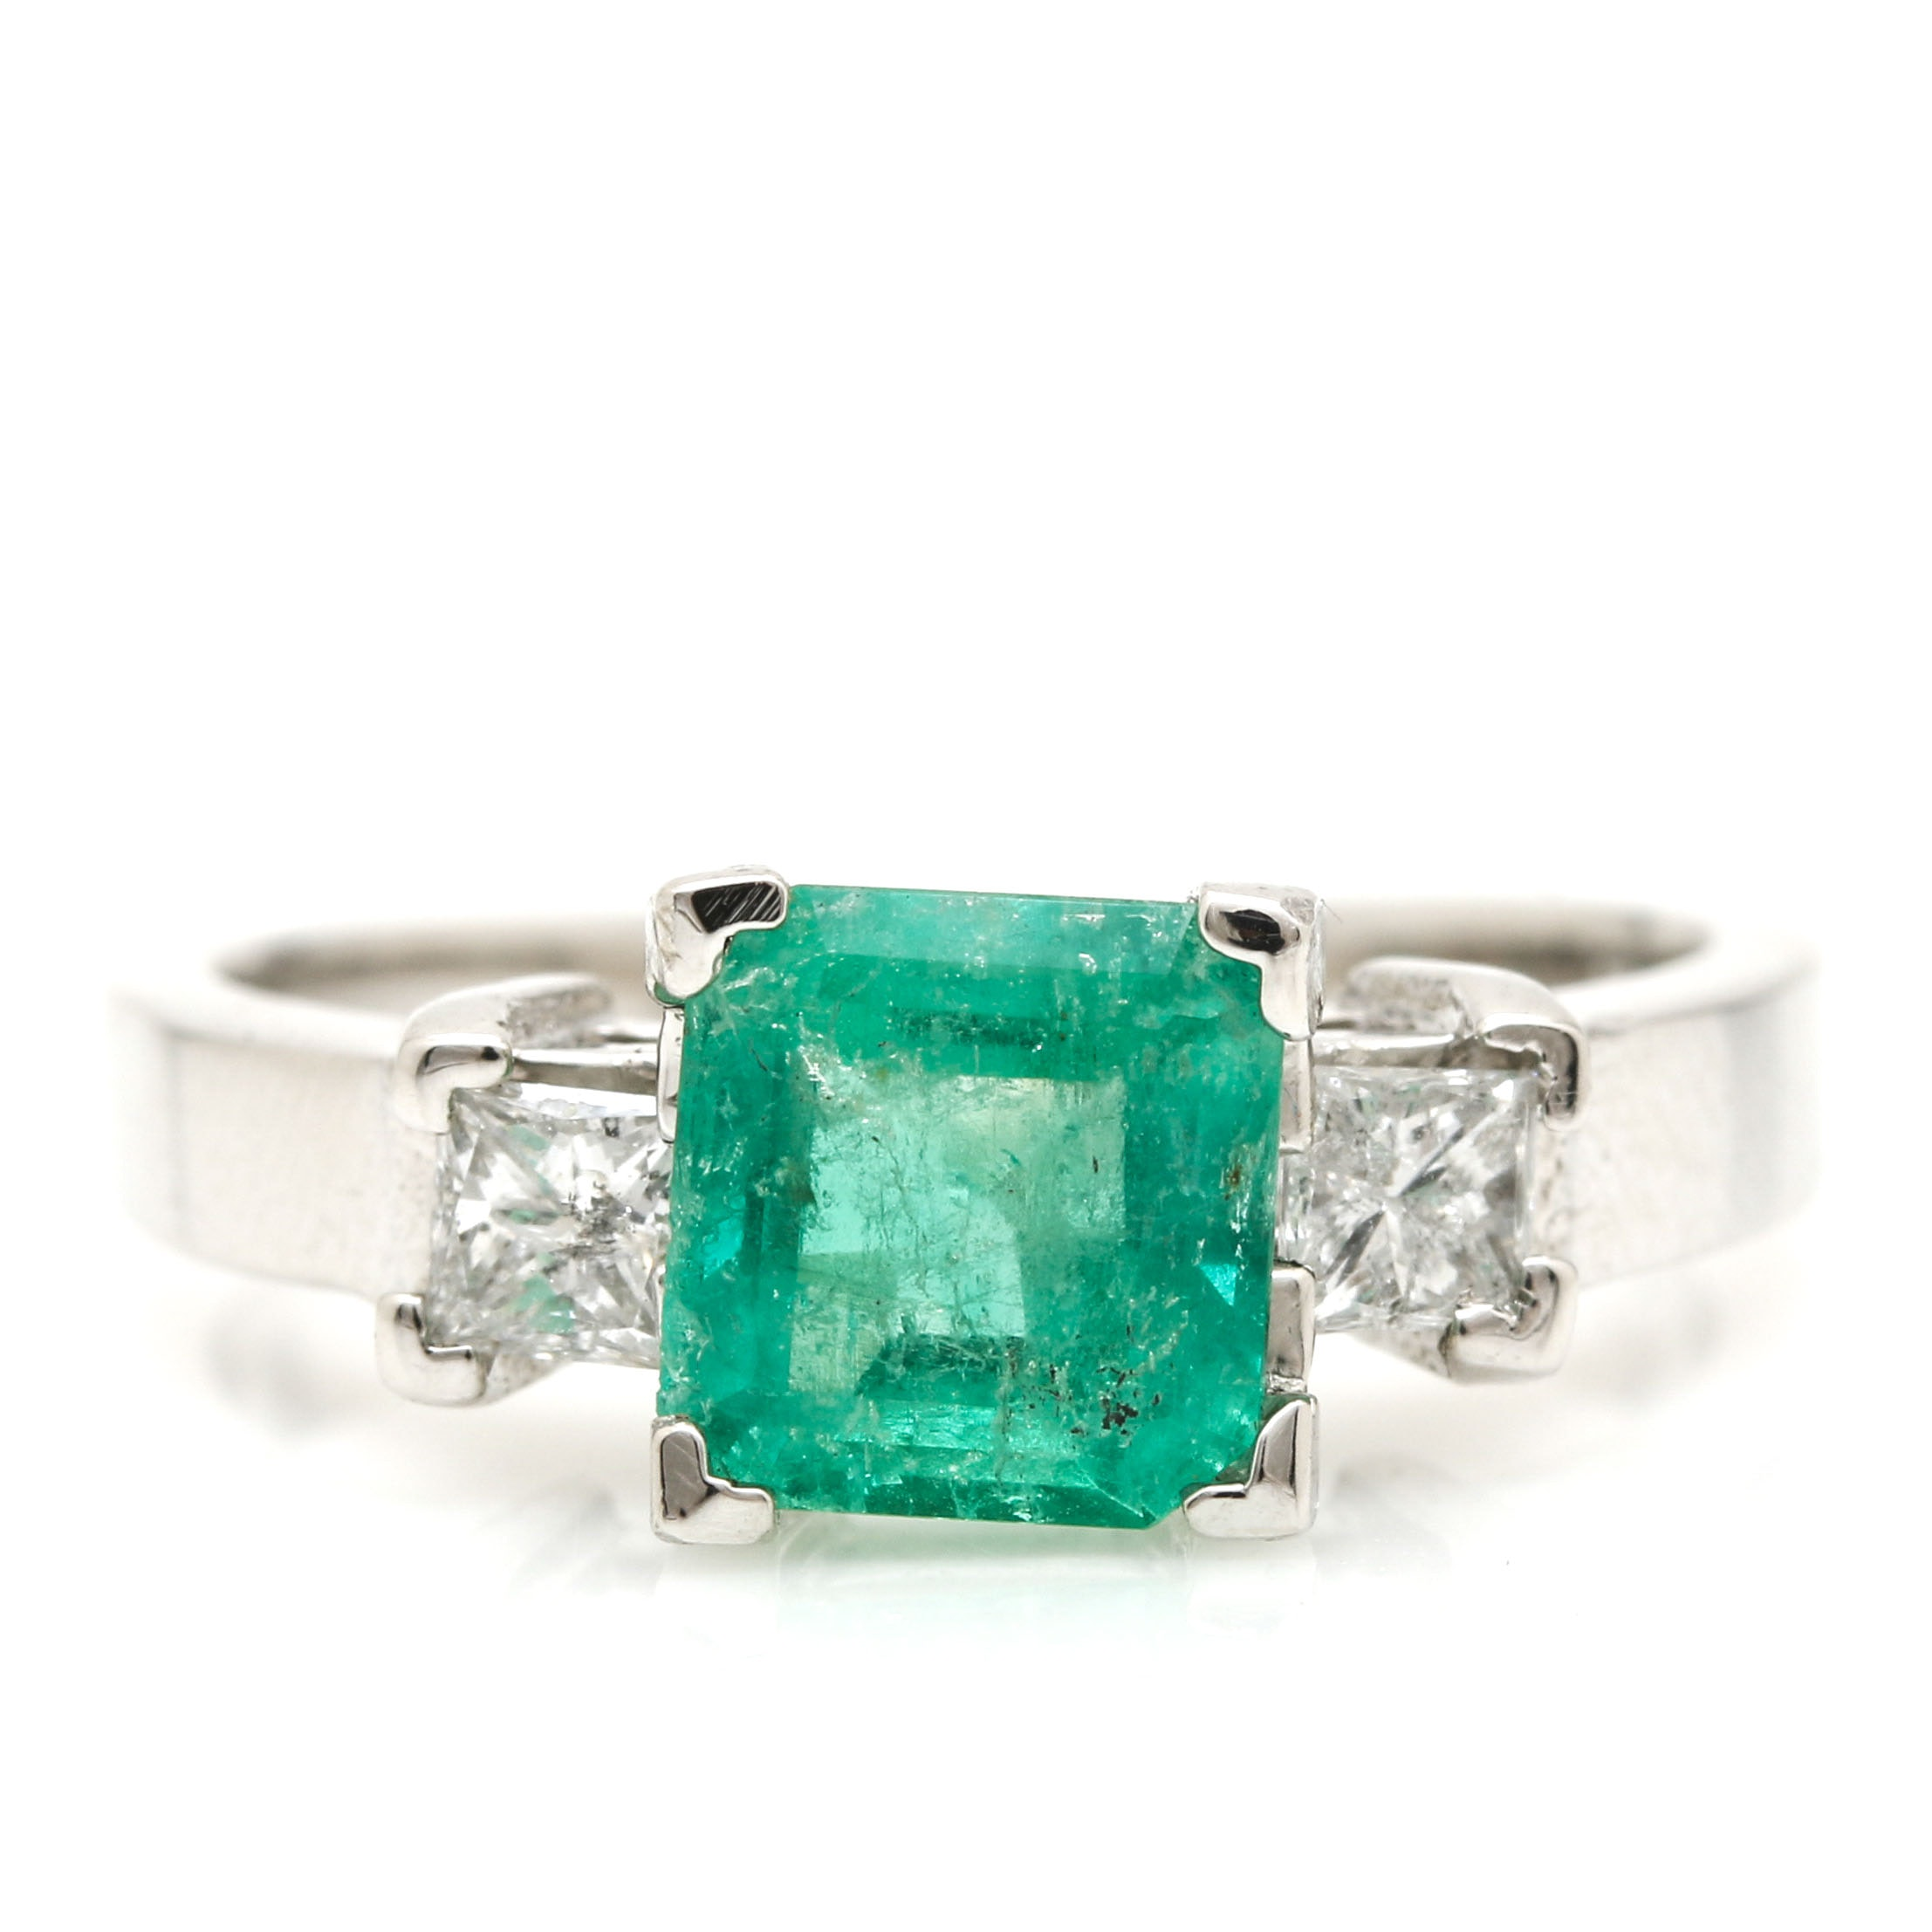 14K White Gold 1.33 CT Emerald and Diamond Ring